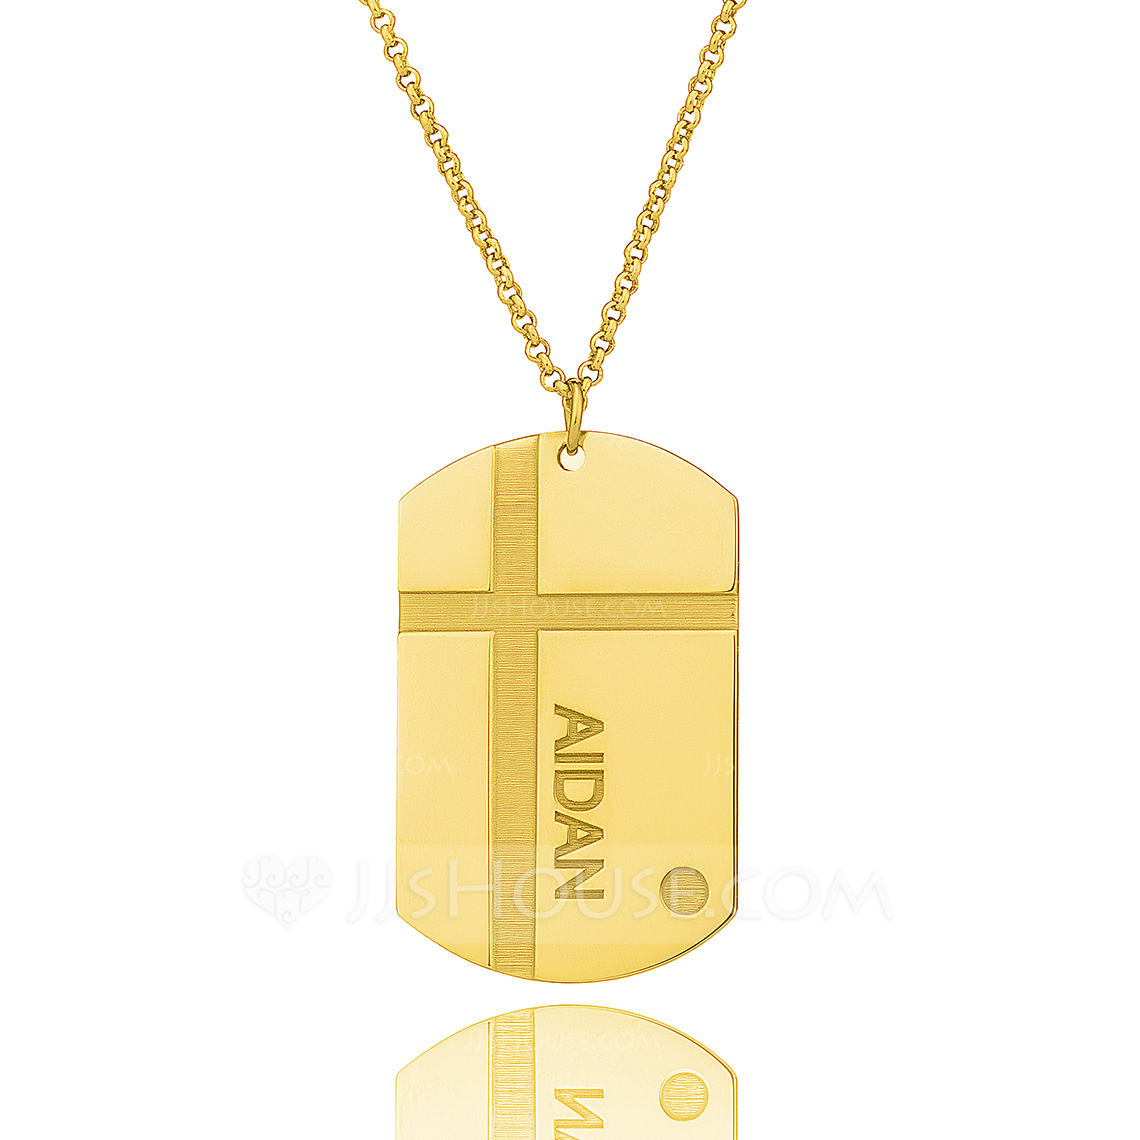 Custom 18k Gold Plated Silver Engraved Necklace Nameplate - Birthday Gifts Mother's Day Gifts